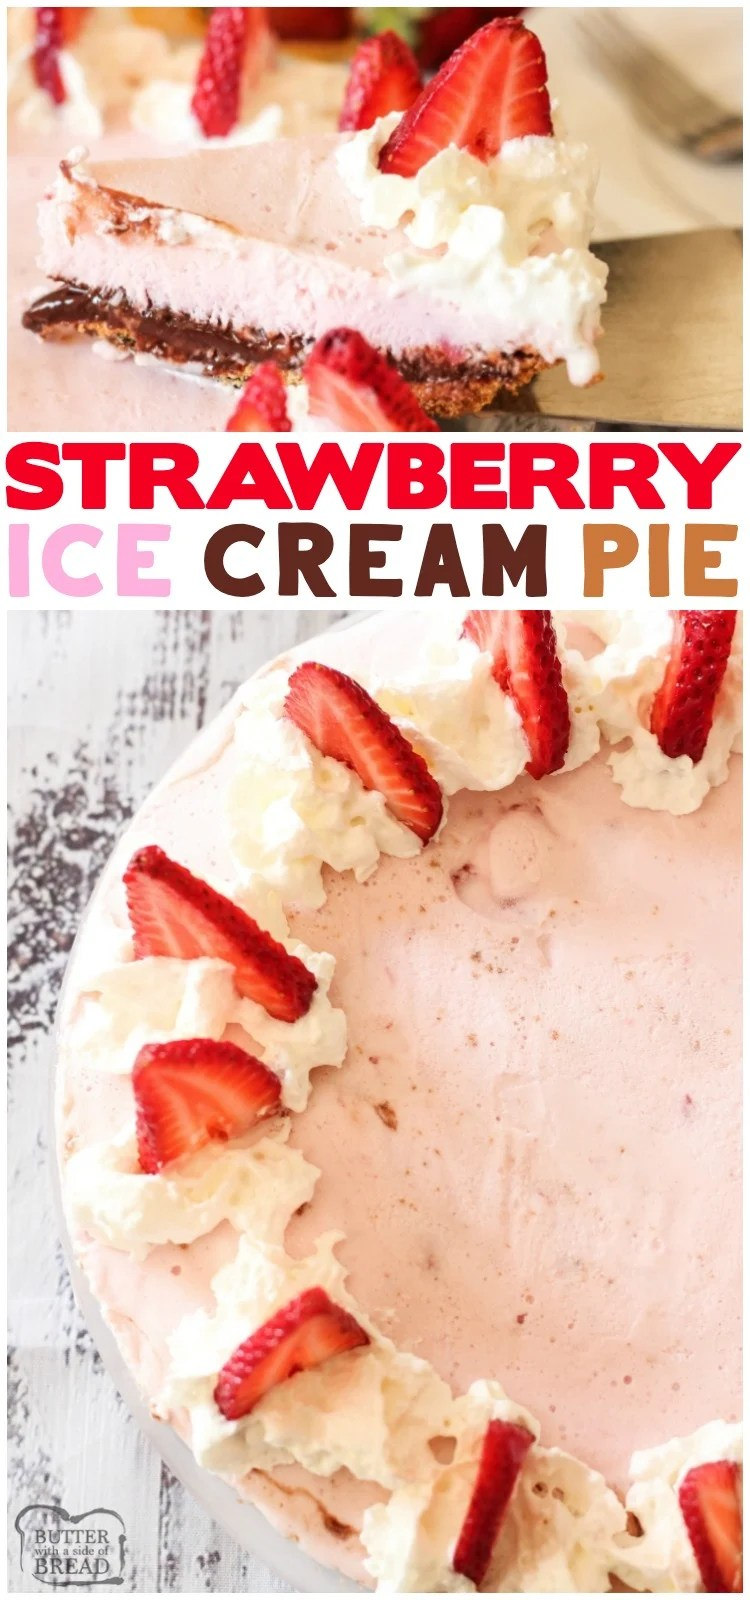 Strawberry Ice Cream Pie is a simple dessert made with a graham cracker crust, hot fudge and strawberry ice cream. This ice cream pie recipe comes together quick with just a few ingredients.